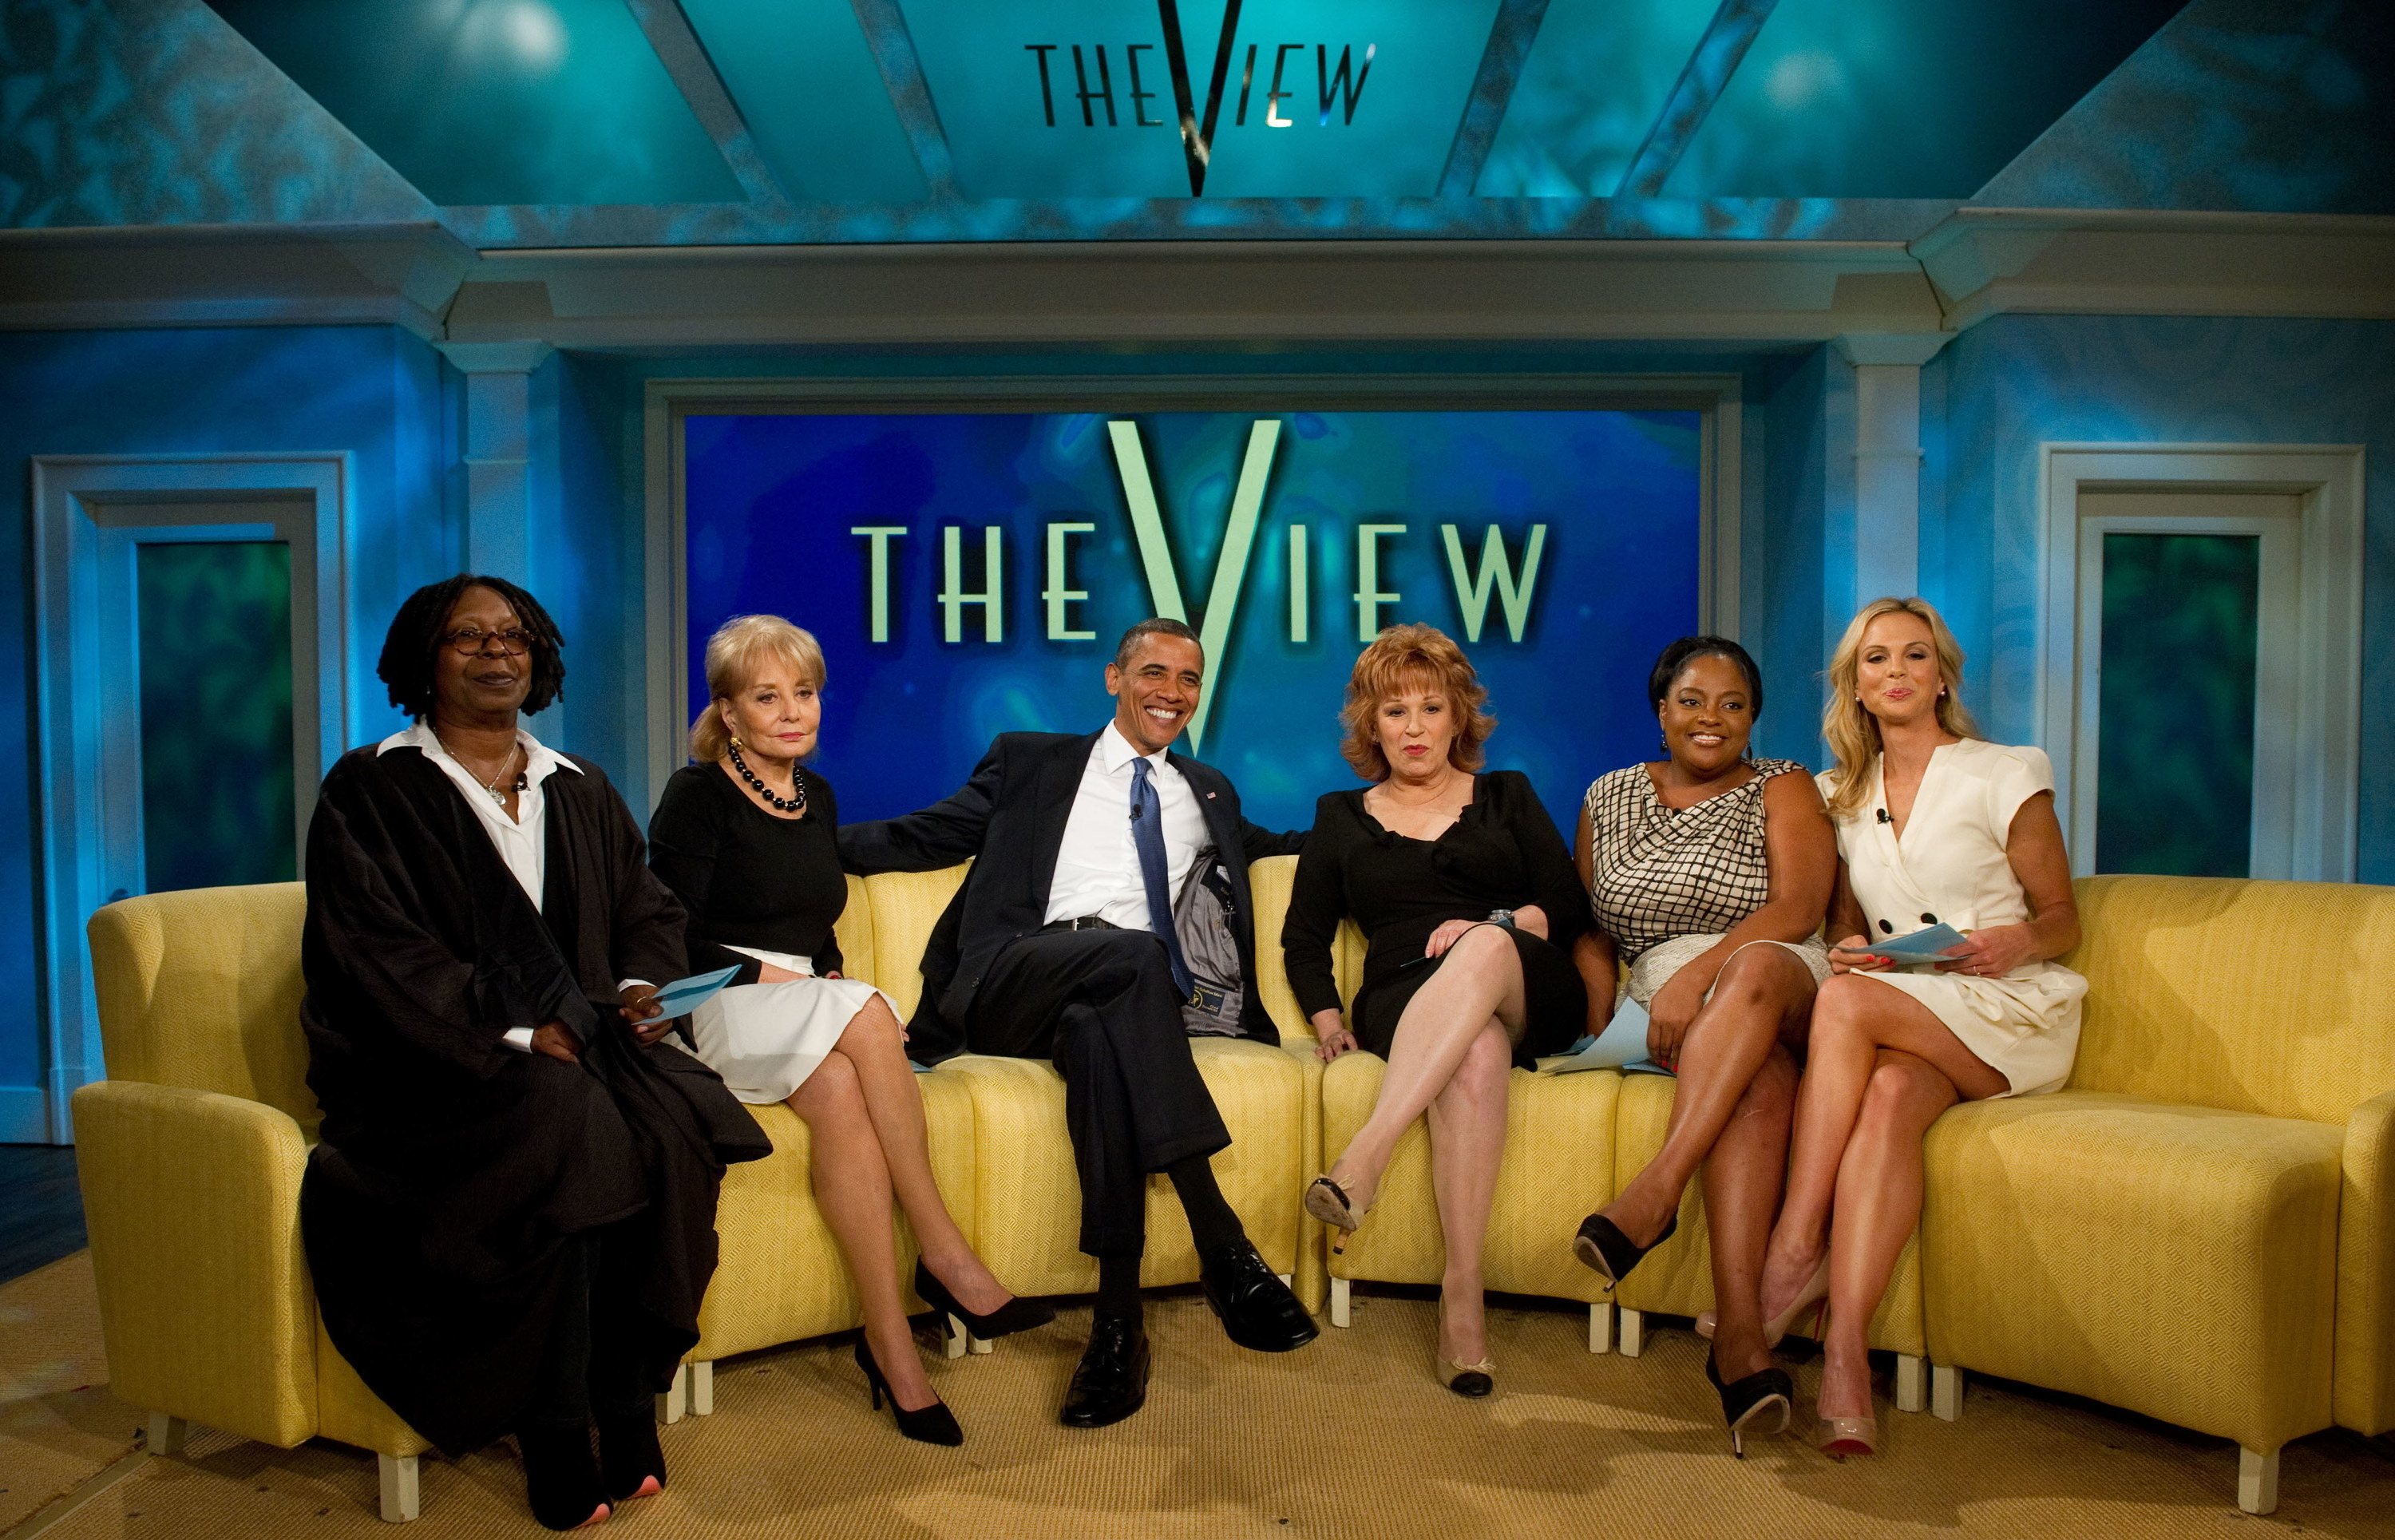 Whoopi Goldberg, Barbara Walters, President Barack Obama, Joy Behar, Sherri Shepherd, and Elisabeth Hasselbeck setting on yellow armchairs on the set of The View